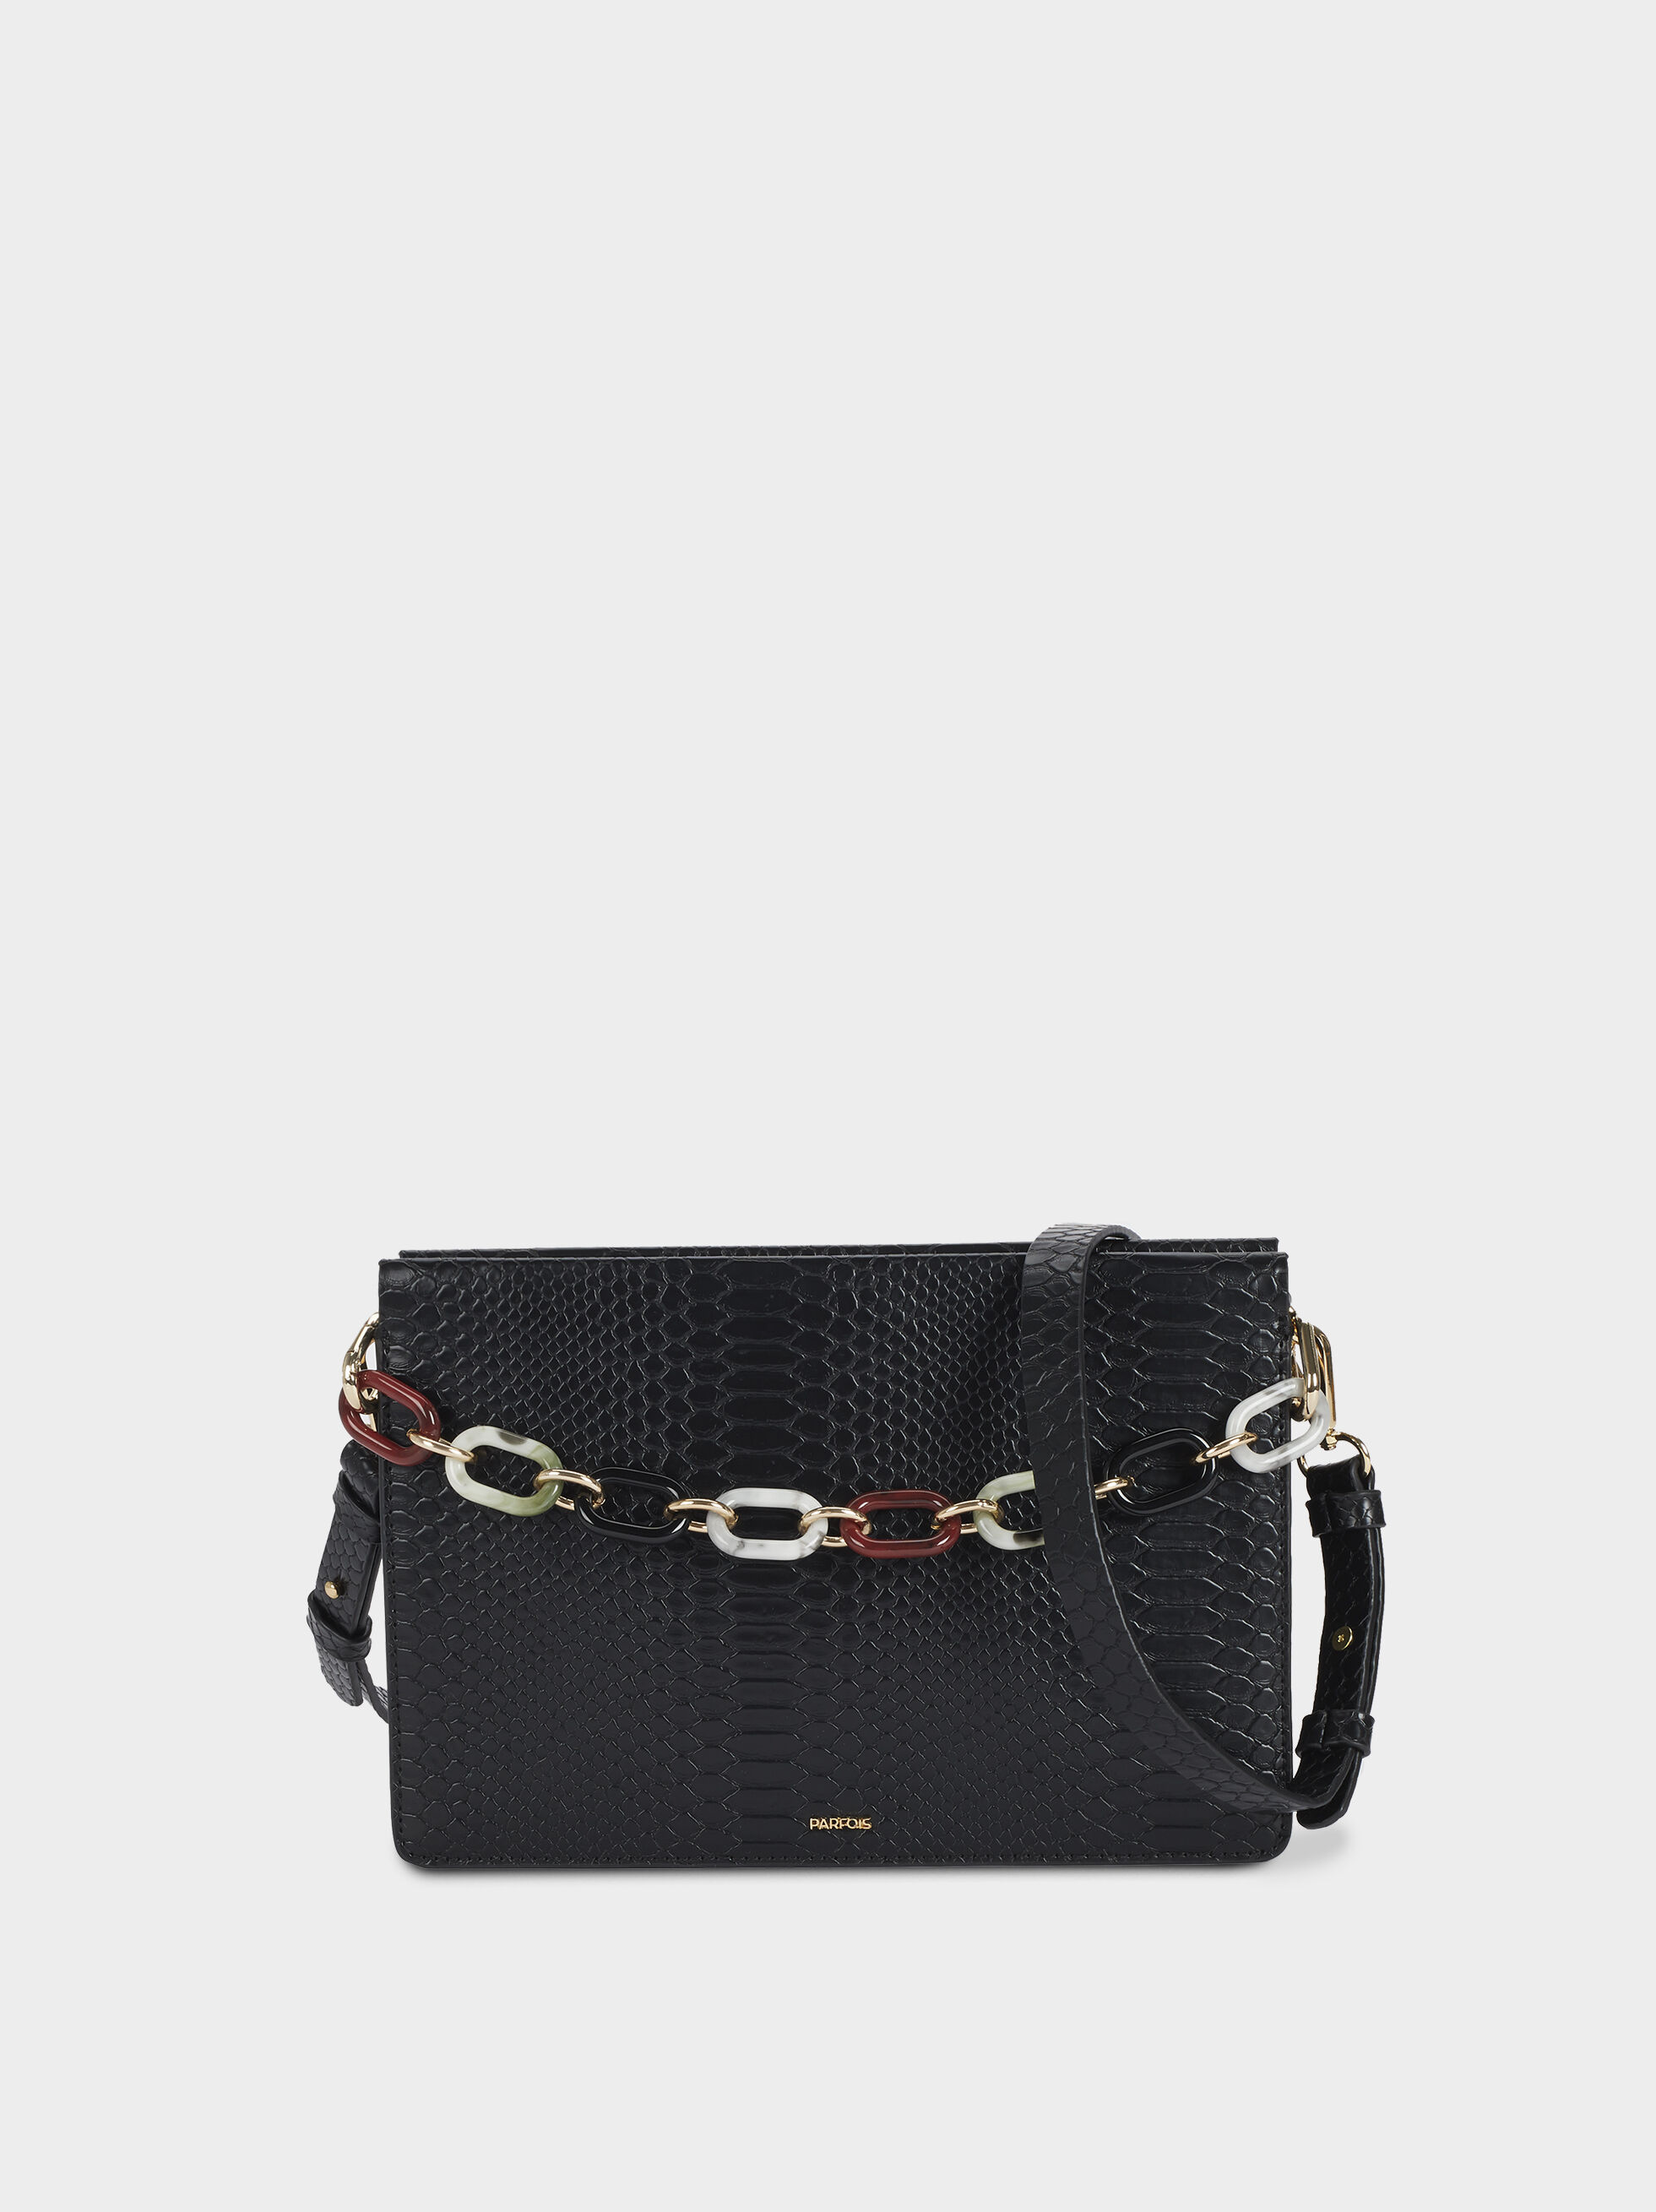 Handbag With Multicoloured Chain-Link Handle, Black, hi-res